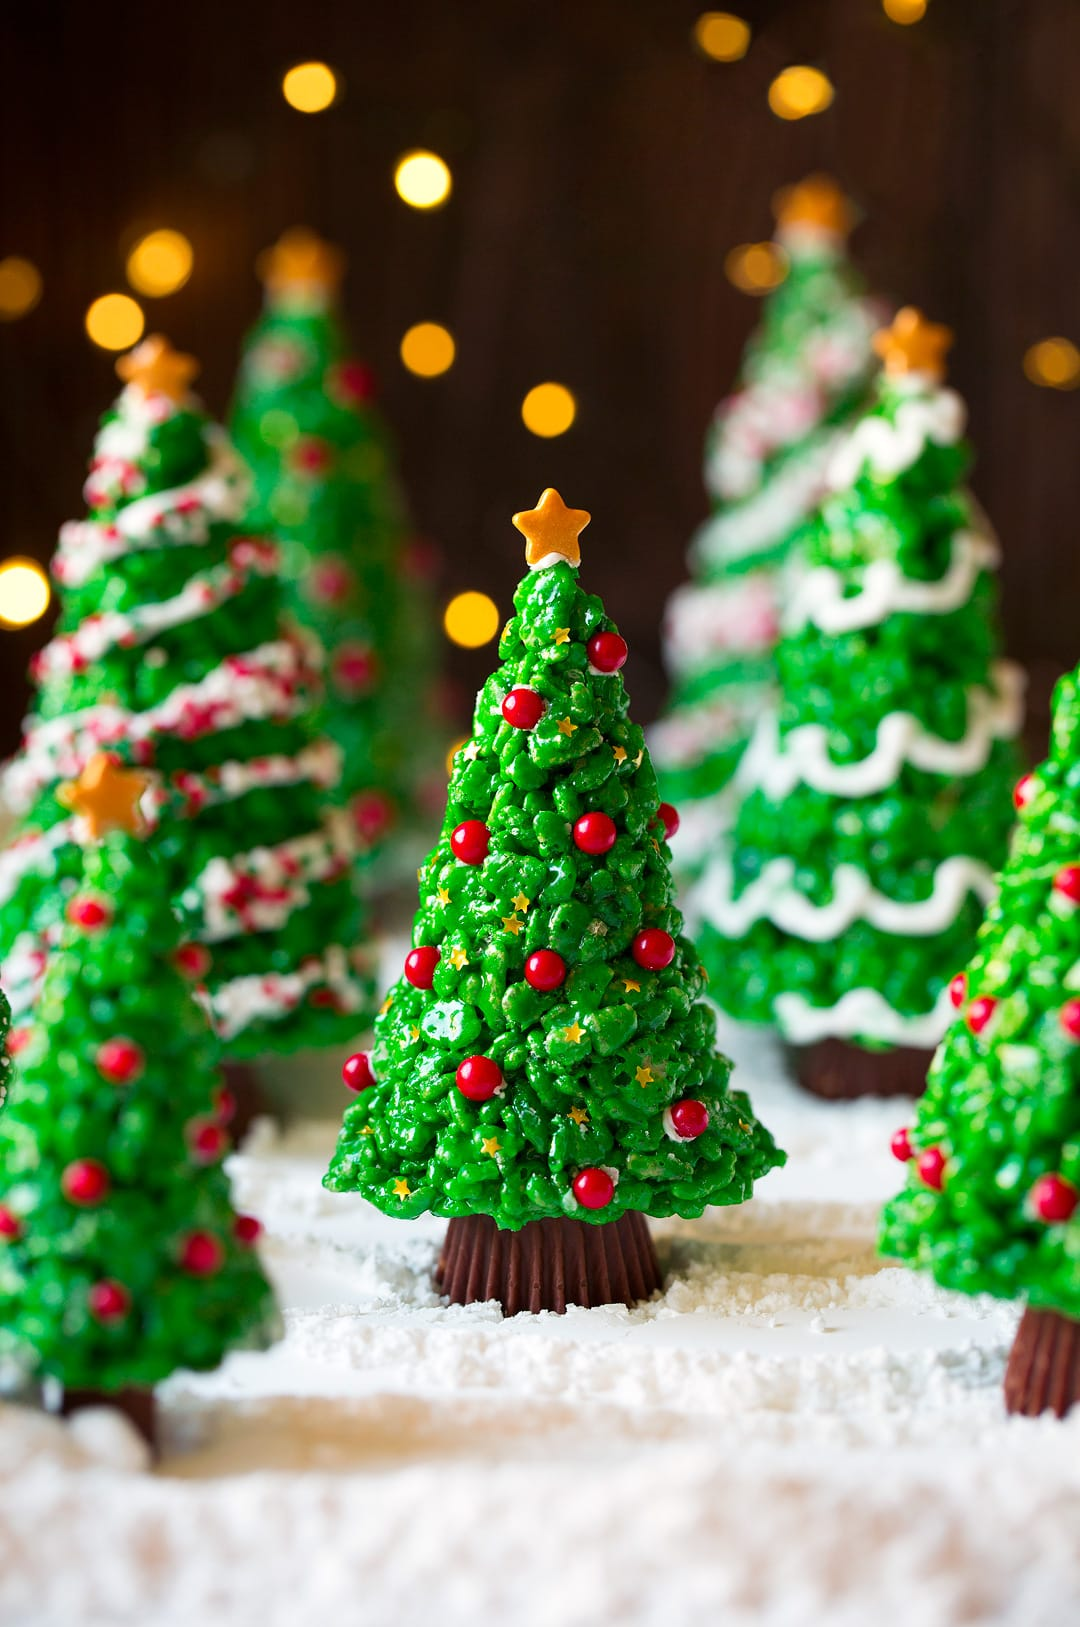 Christmas Tree Rice Krispies Treats Recipe